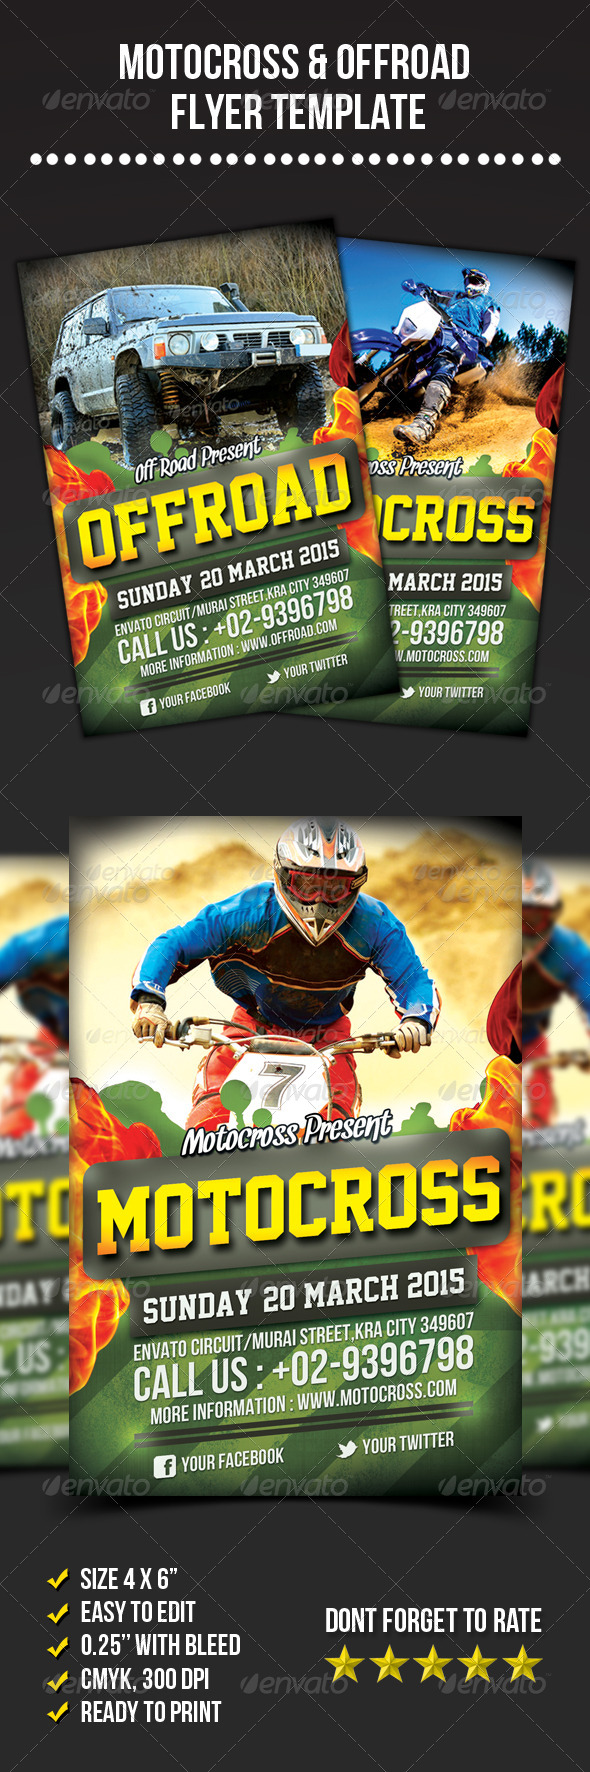 Motocross & Offroad Flyer - Sports Events